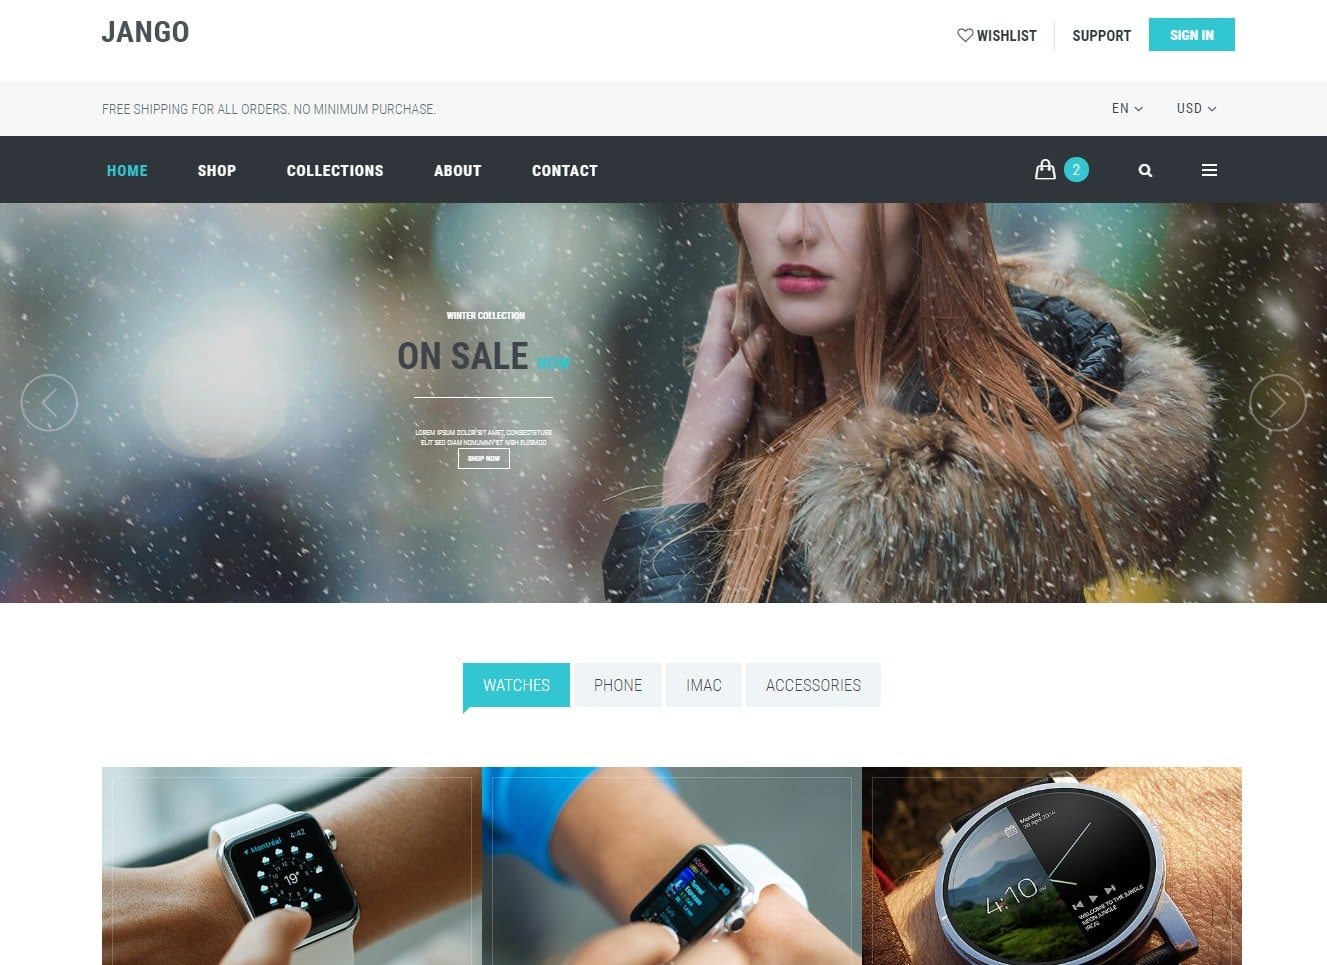 jango-ecommerce-website-template